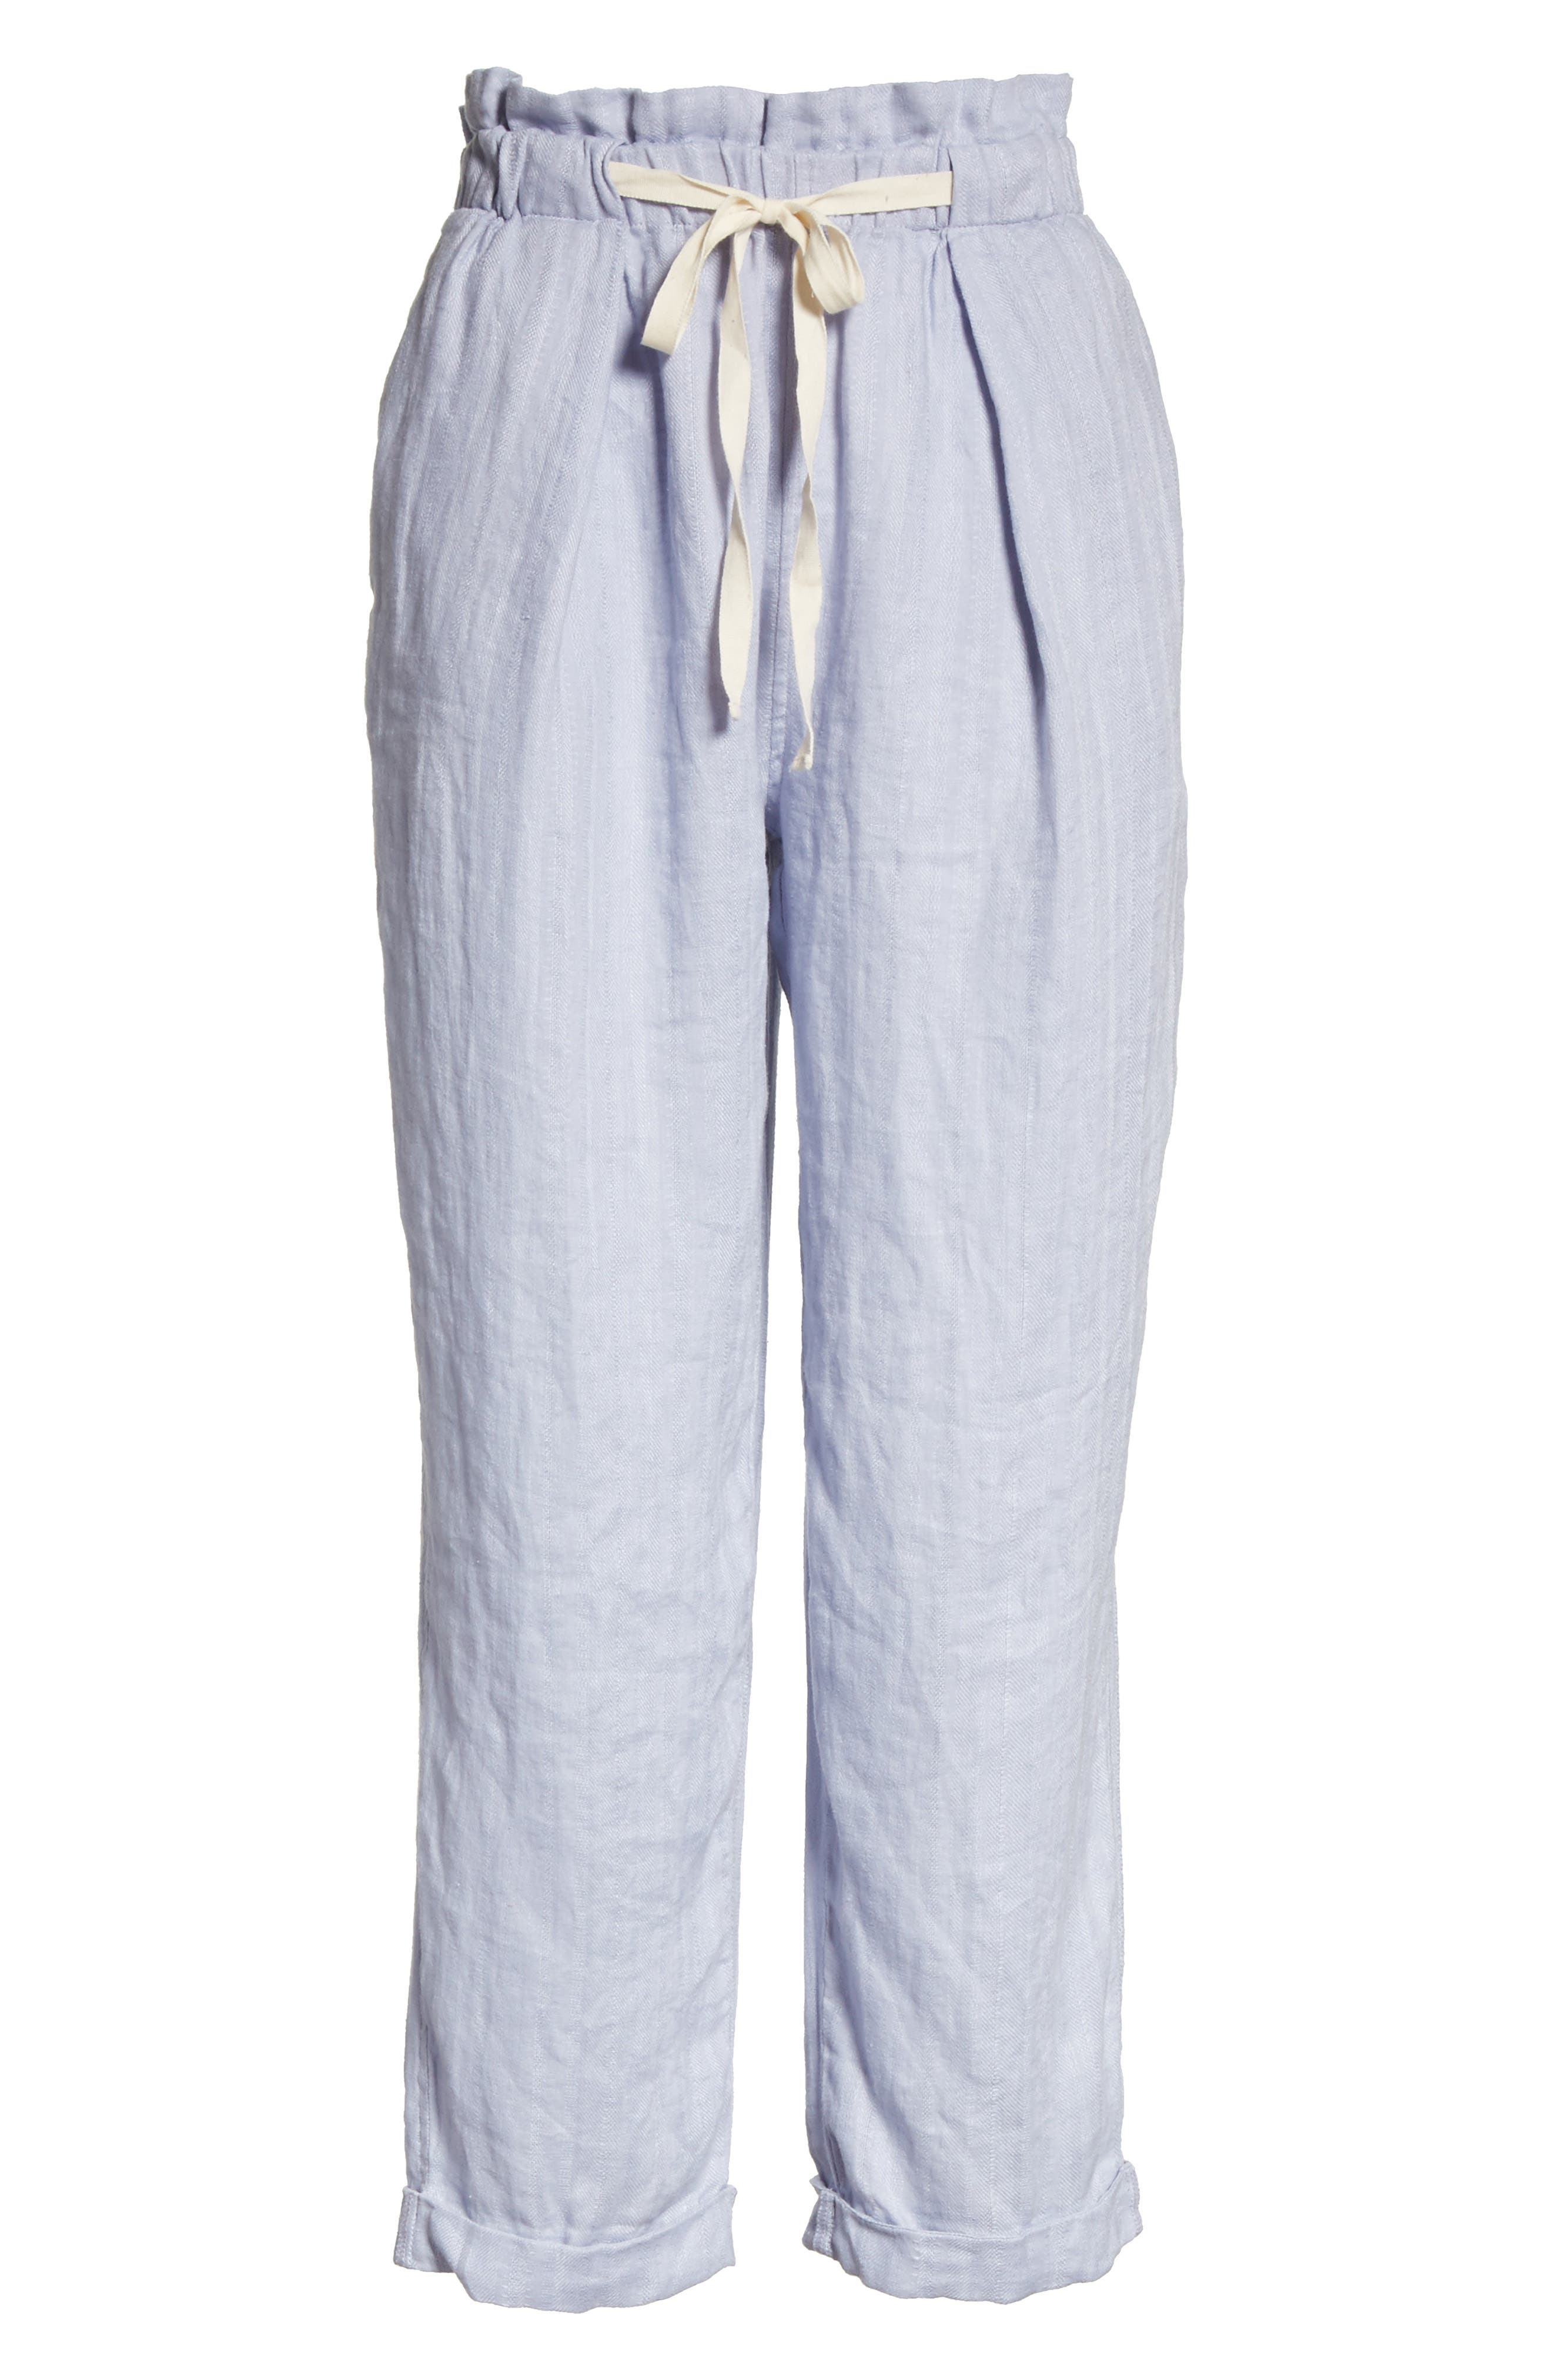 Only over You Linen Trousers,                             Alternate thumbnail 7, color,                             Pearl